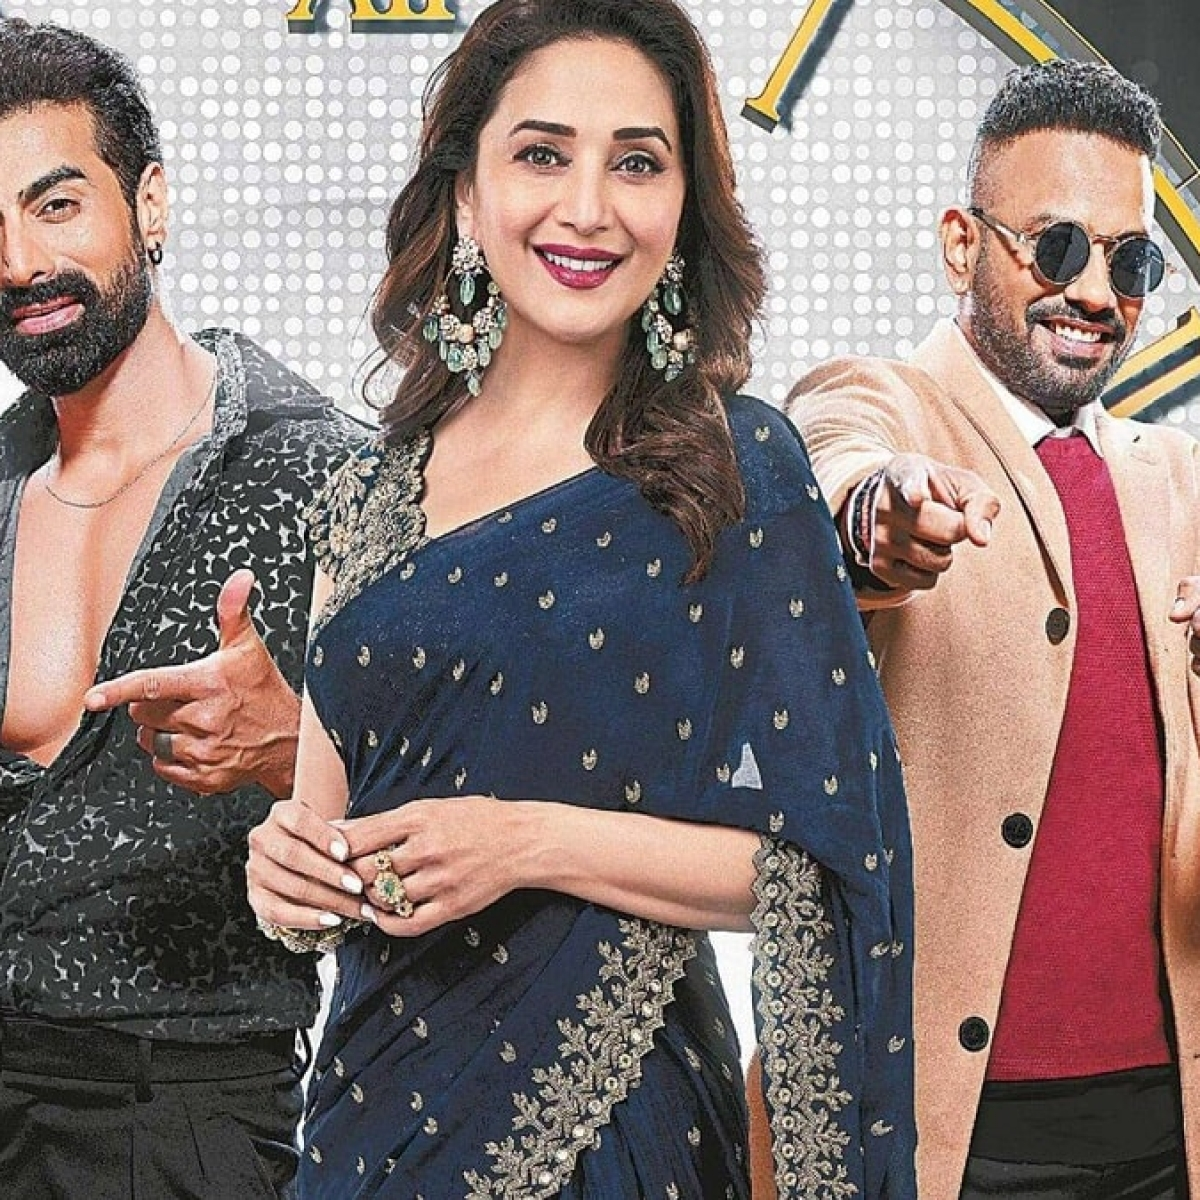 18 unit members of Madhuri Dixit's reality show 'Dance Deewane' test positive for COVID-19